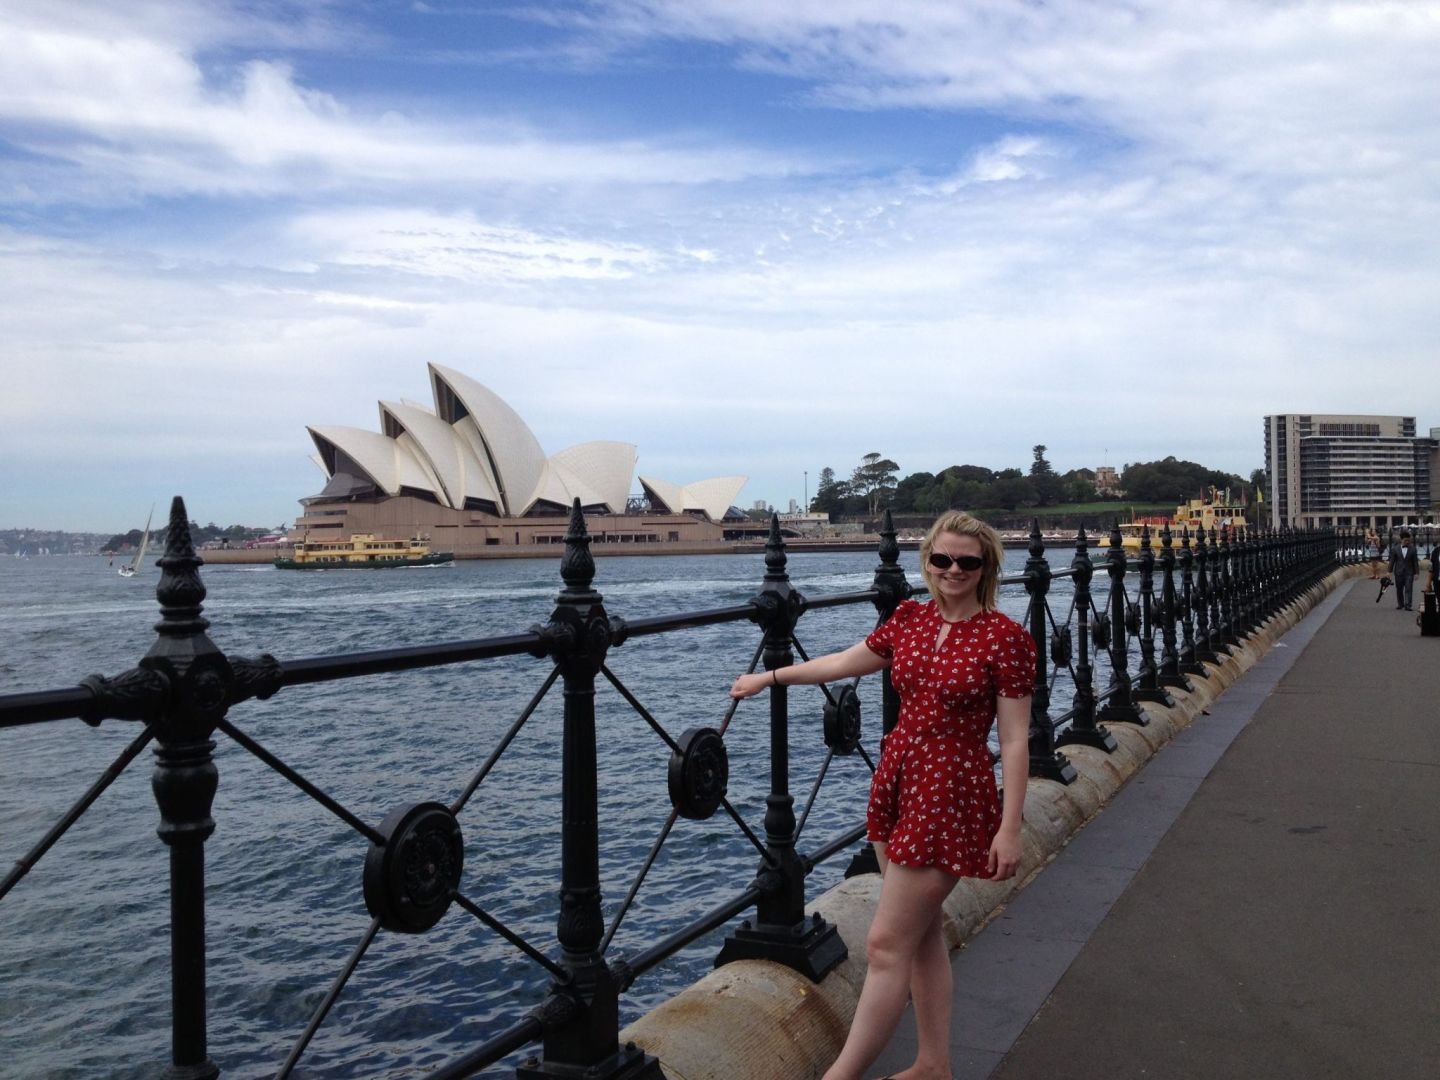 Laura hanging off the rails in front of Sydney Opera House in Circular Quay